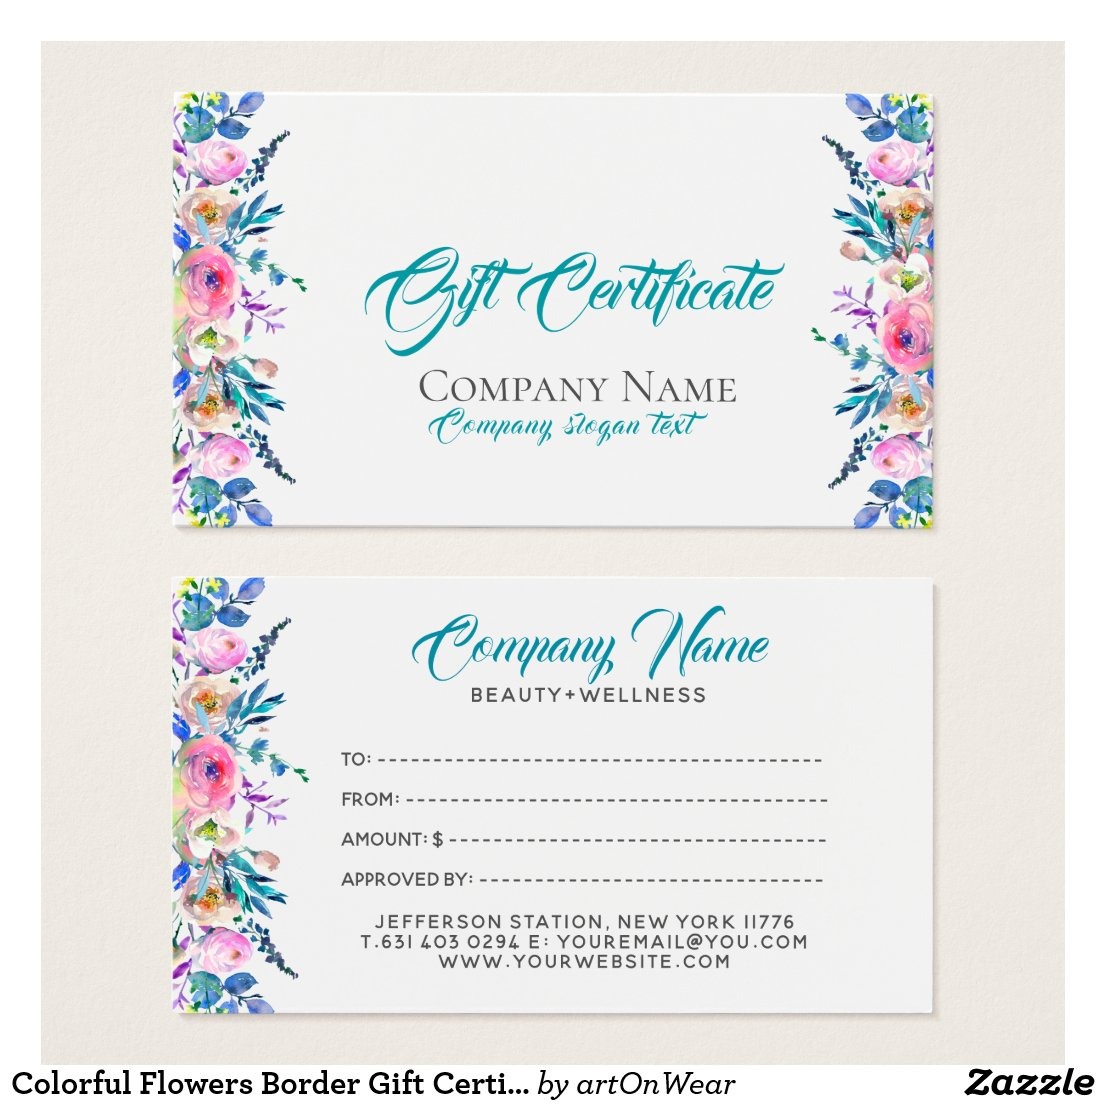 Colorful Flowers Border Gift Certificate Template